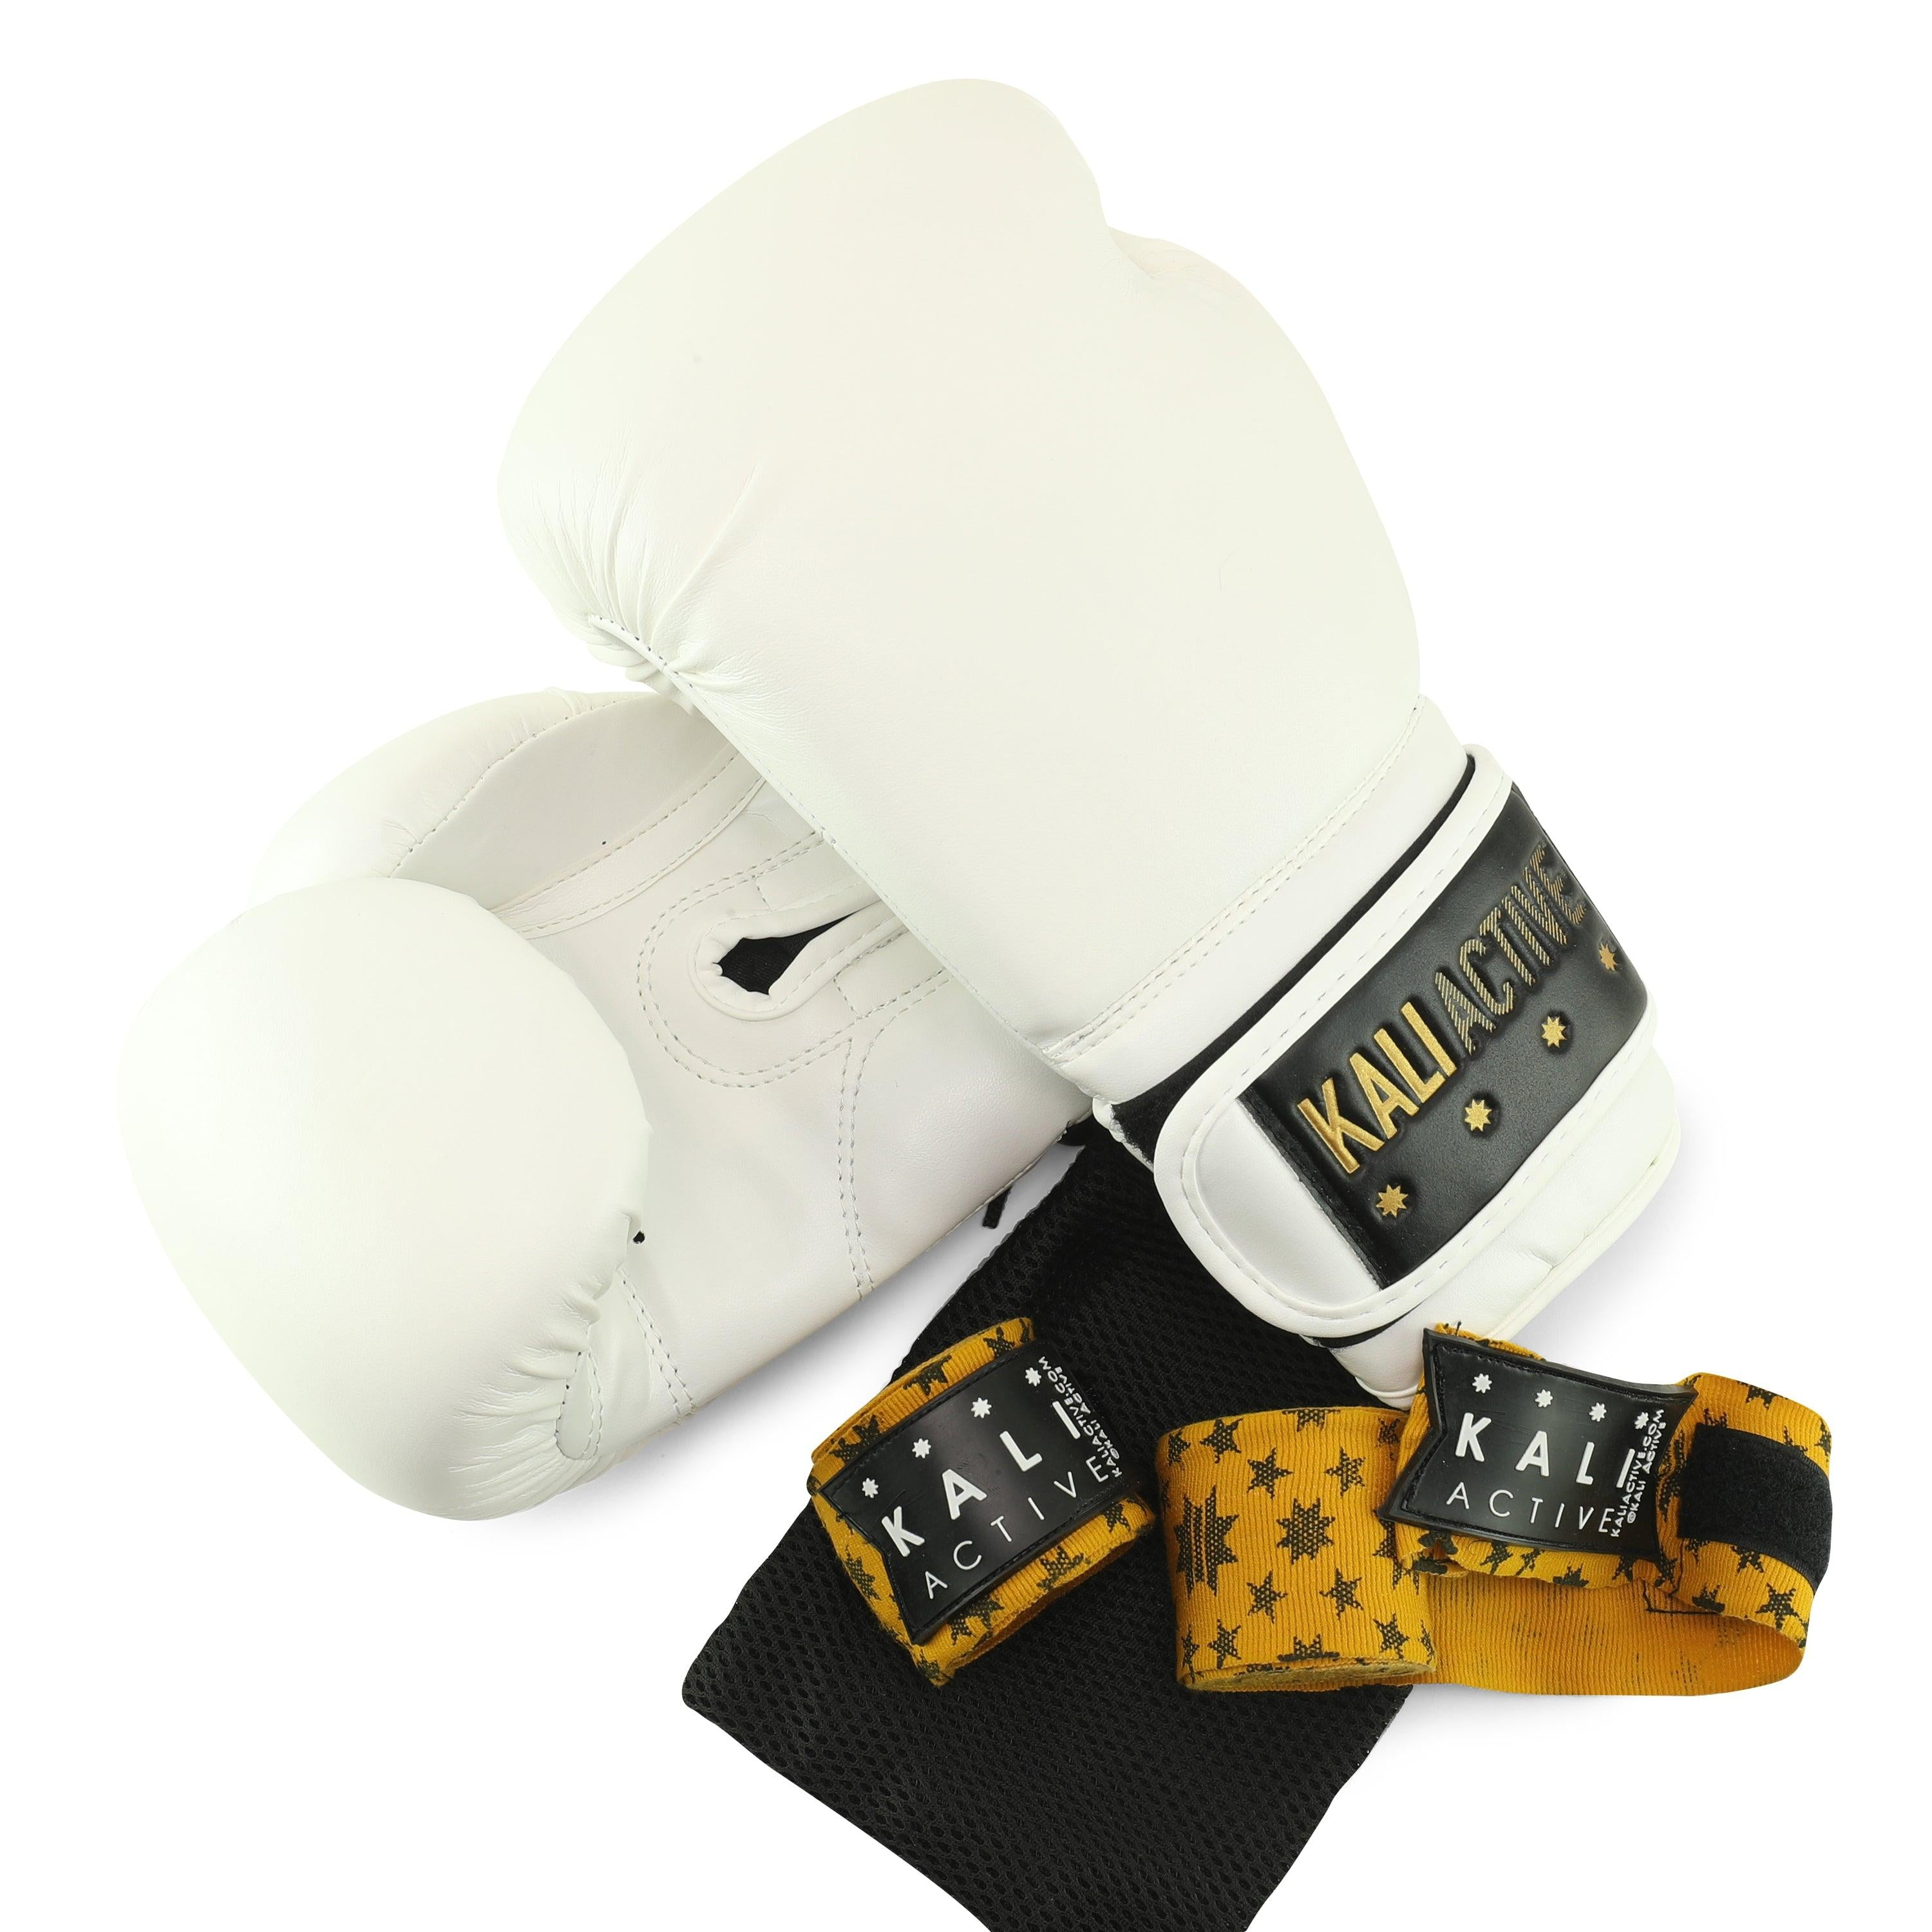 Boxing Wrist Wraps (14 photos) - Photography and Web Design - Los Angeles, US based Shopify Experts Revo Designs